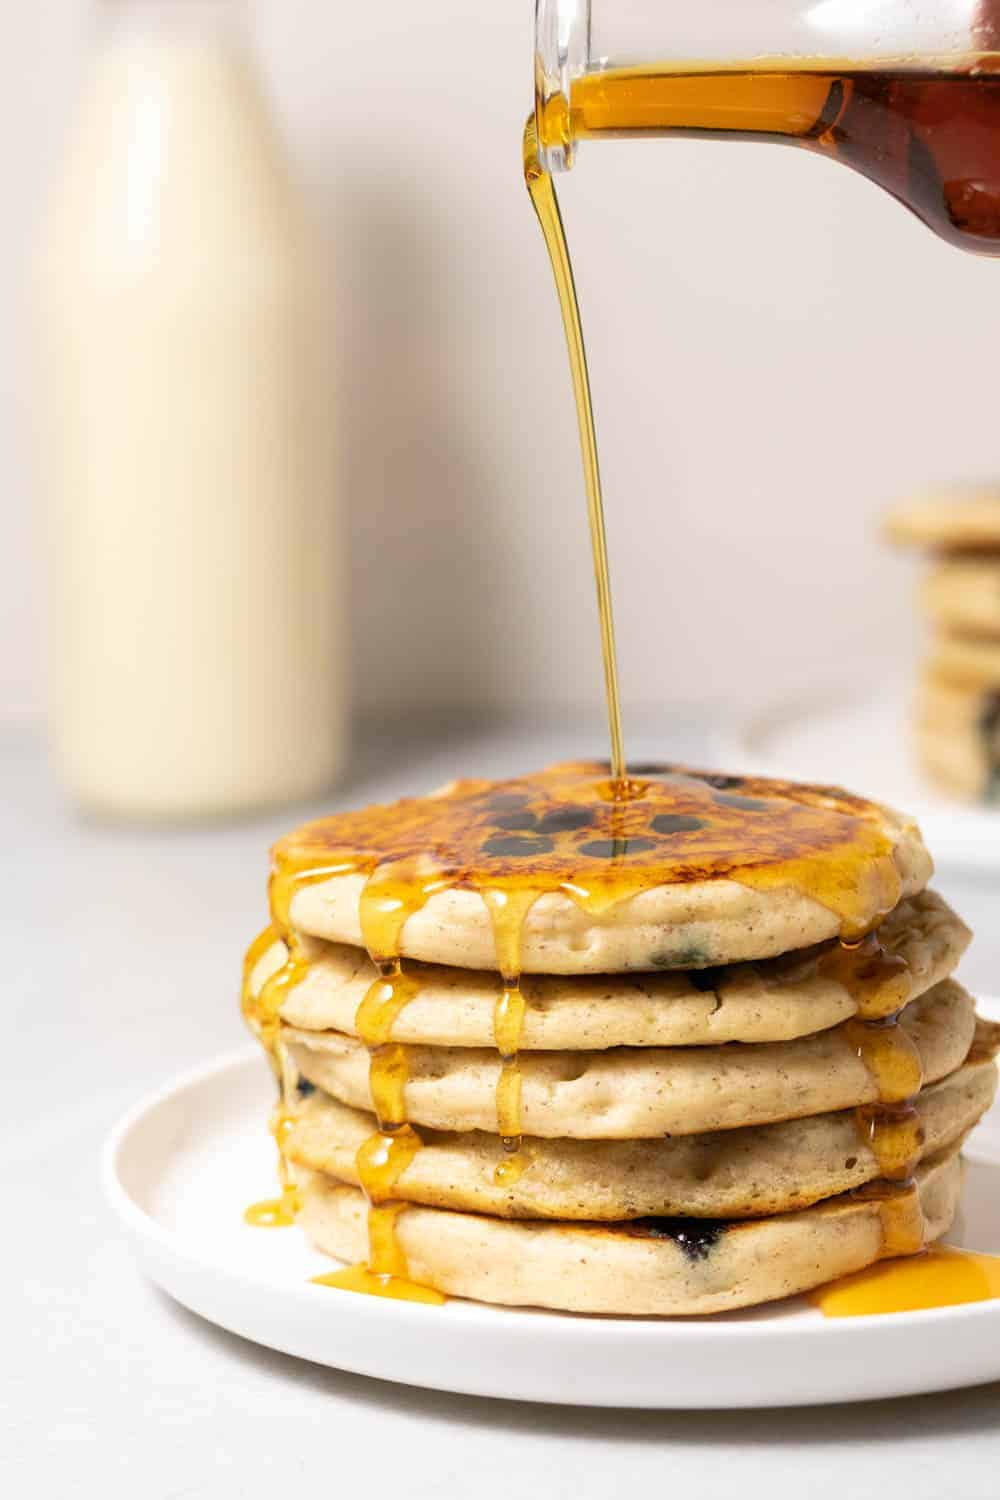 Pouring maple syrup over a stack of fluffy vegan pancakes